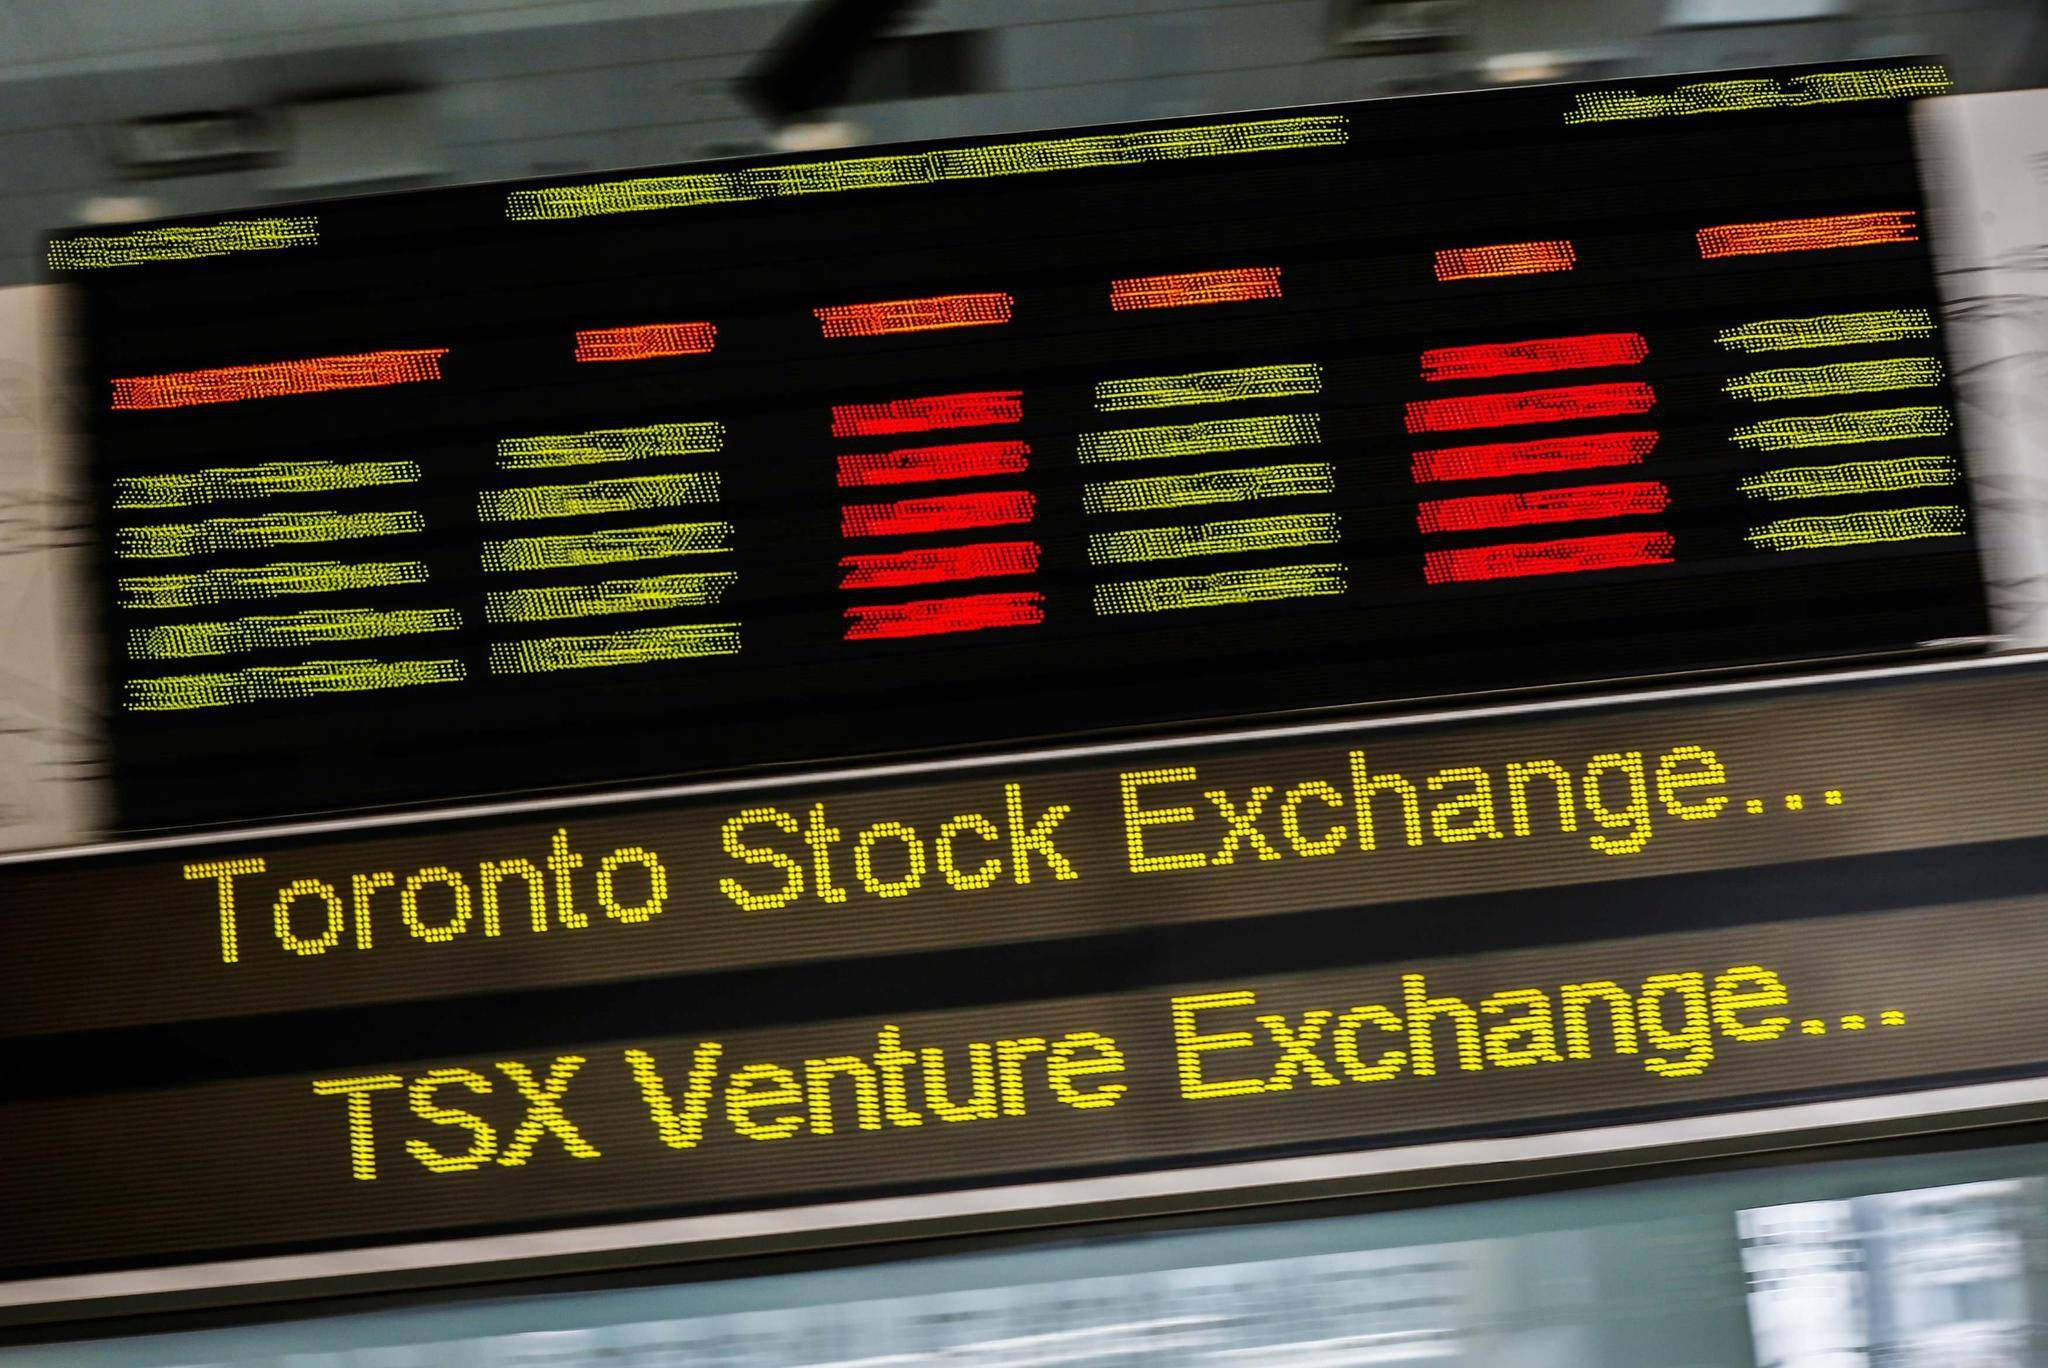 At midday energy stocks boost tsx facebook falls again the at midday energy stocks boost tsx facebook falls again the globe and mail biocorpaavc Images